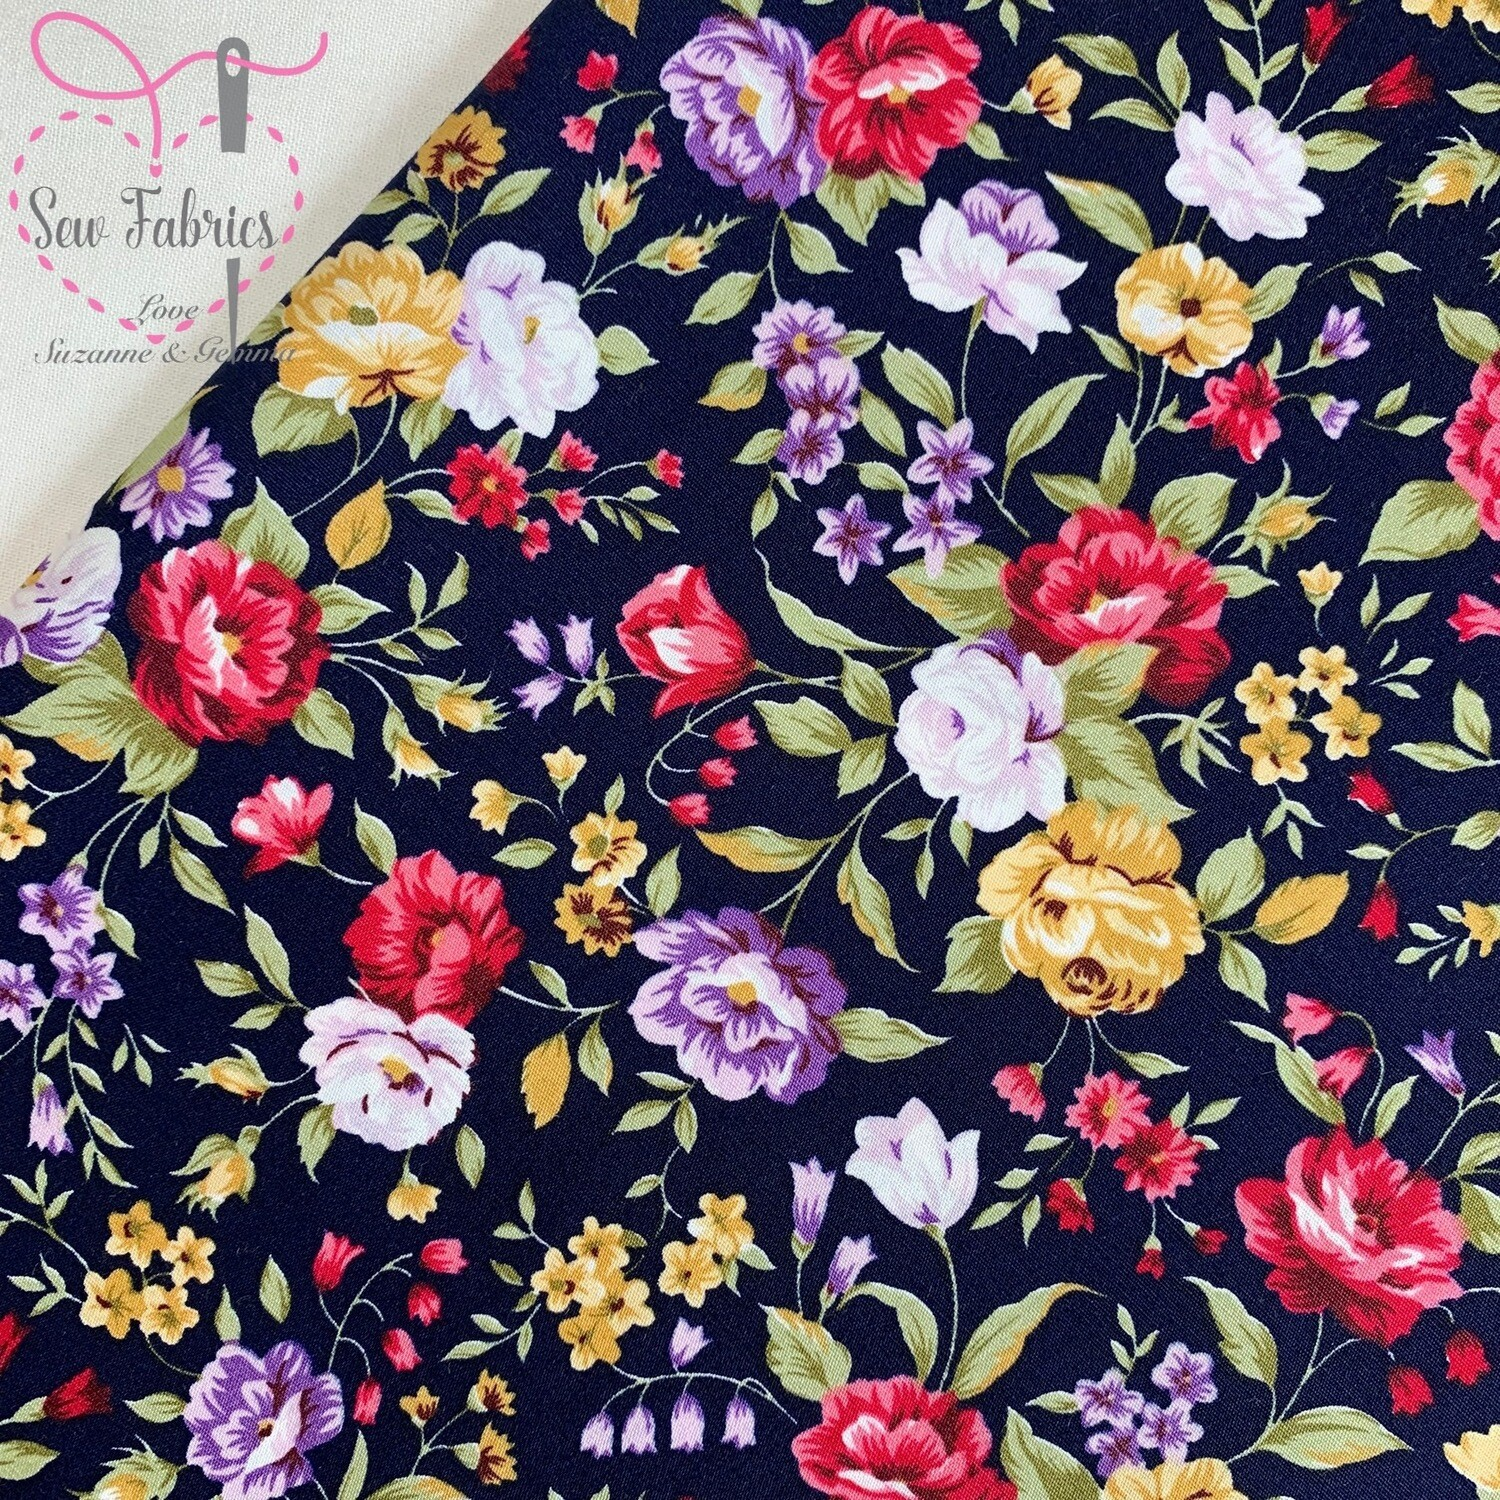 Rose & Hubble Traditional Navy Floral 100% Cotton Poplin Fabric